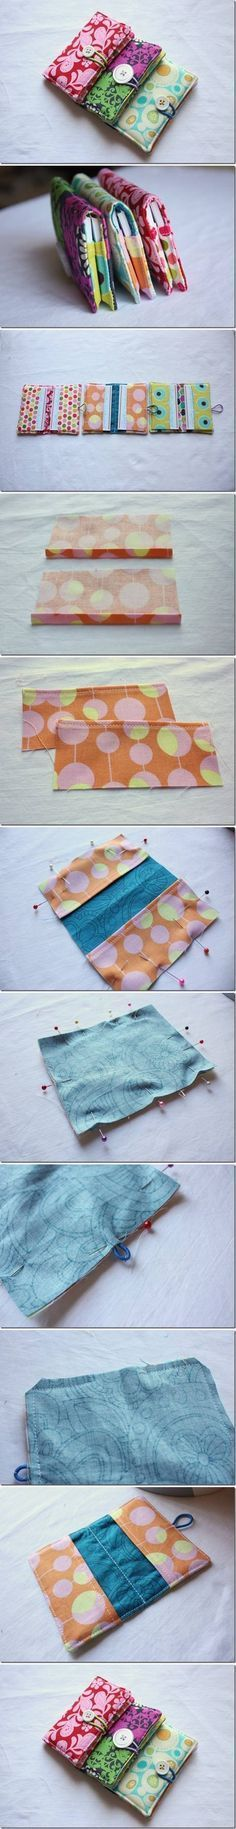 DIY Sew Business Card Holder DIY Projects | UsefulDIY.com Follow Us on Facebook --> https://www.facebook.com/UsefulDiy